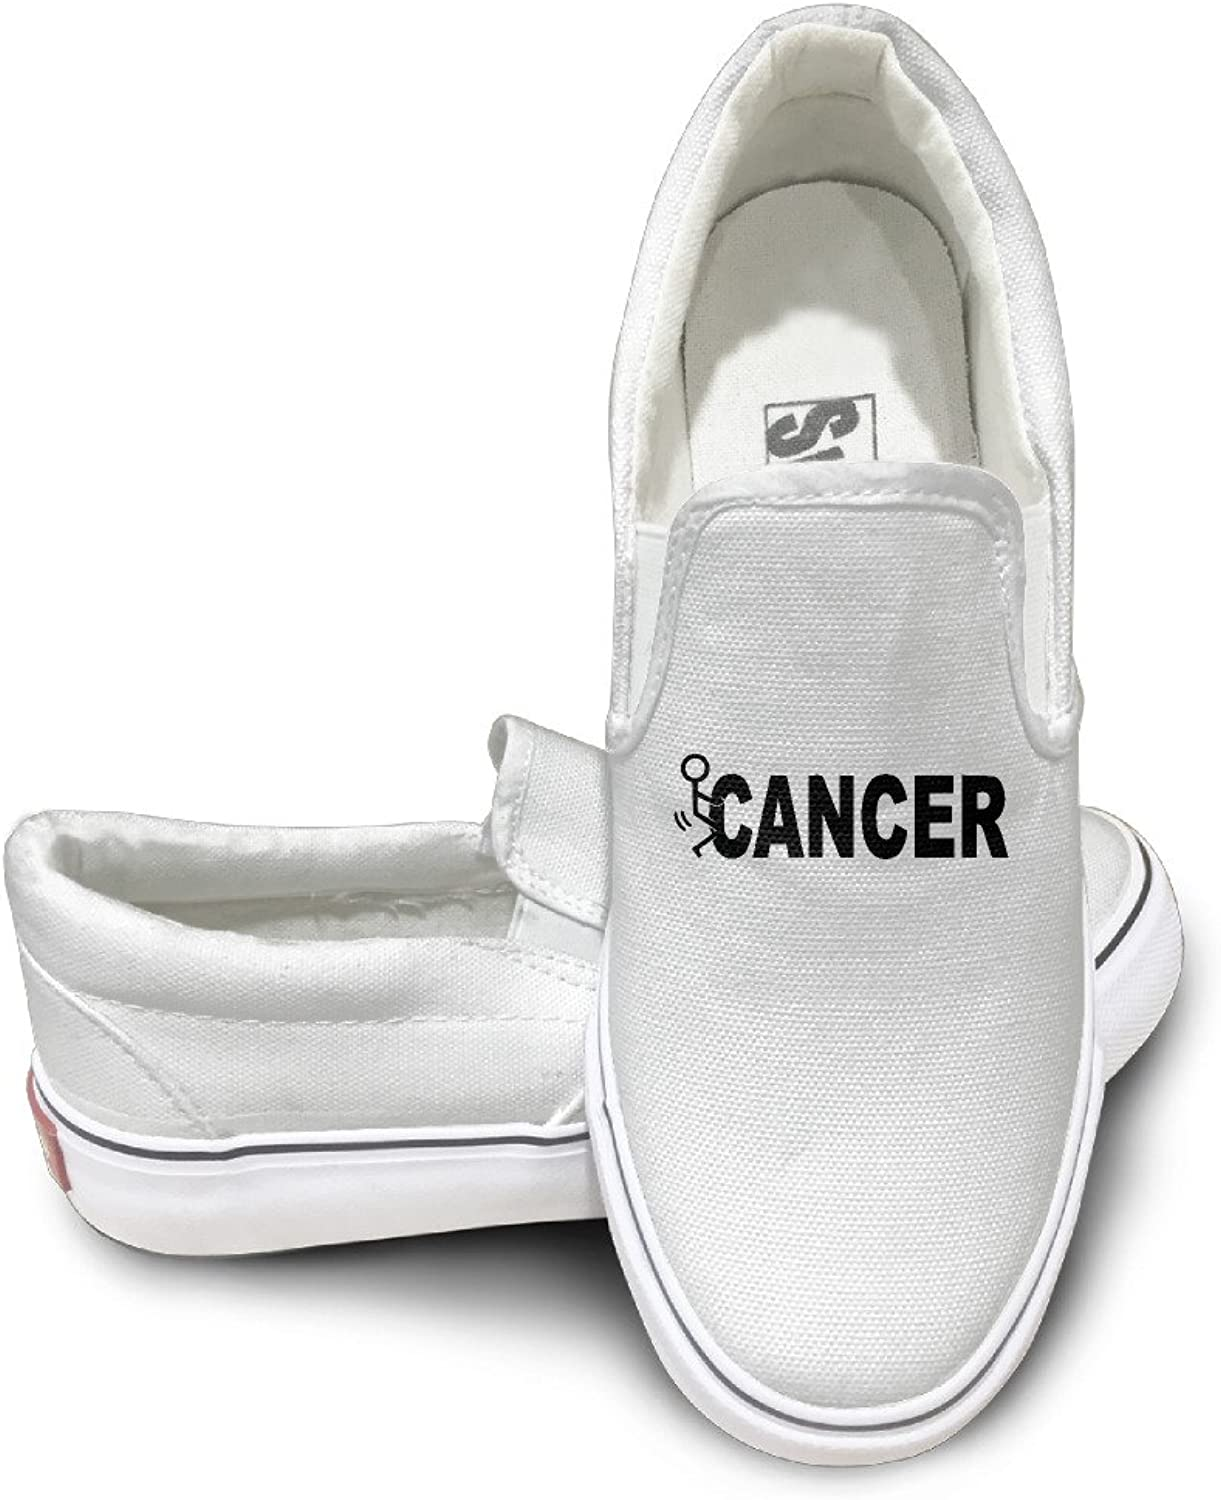 Fan ta Cancer duk Low Top Top Top skor  hitta din favorit här